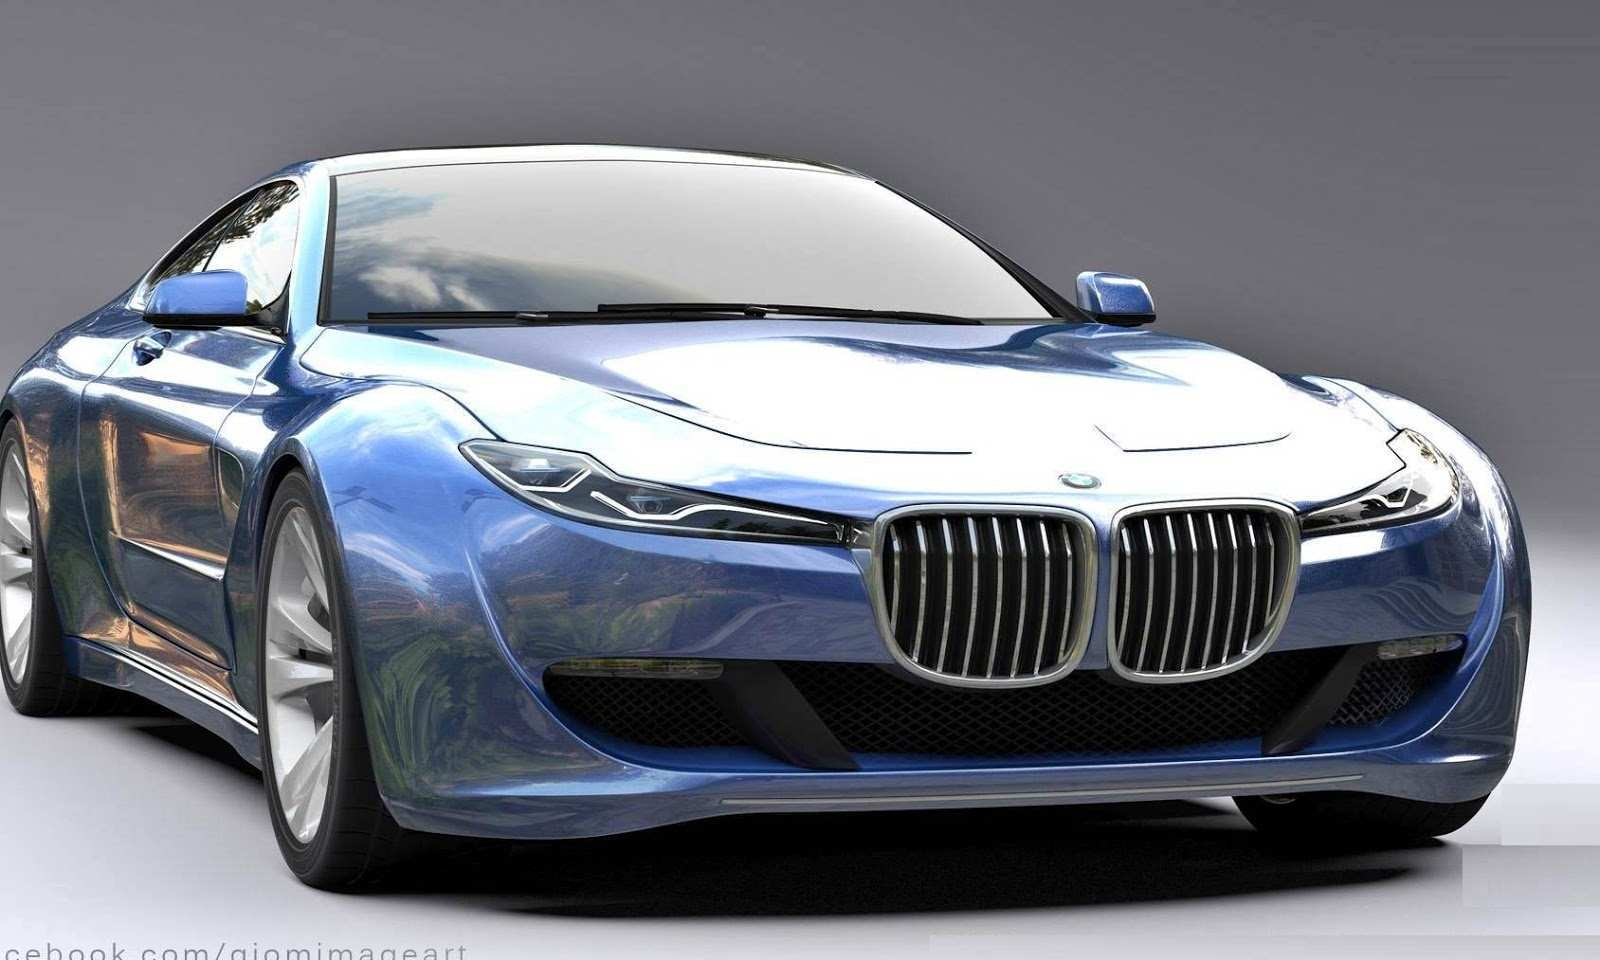 22 All New 2020 BMW New Concepts Exterior for 2020 BMW New Concepts